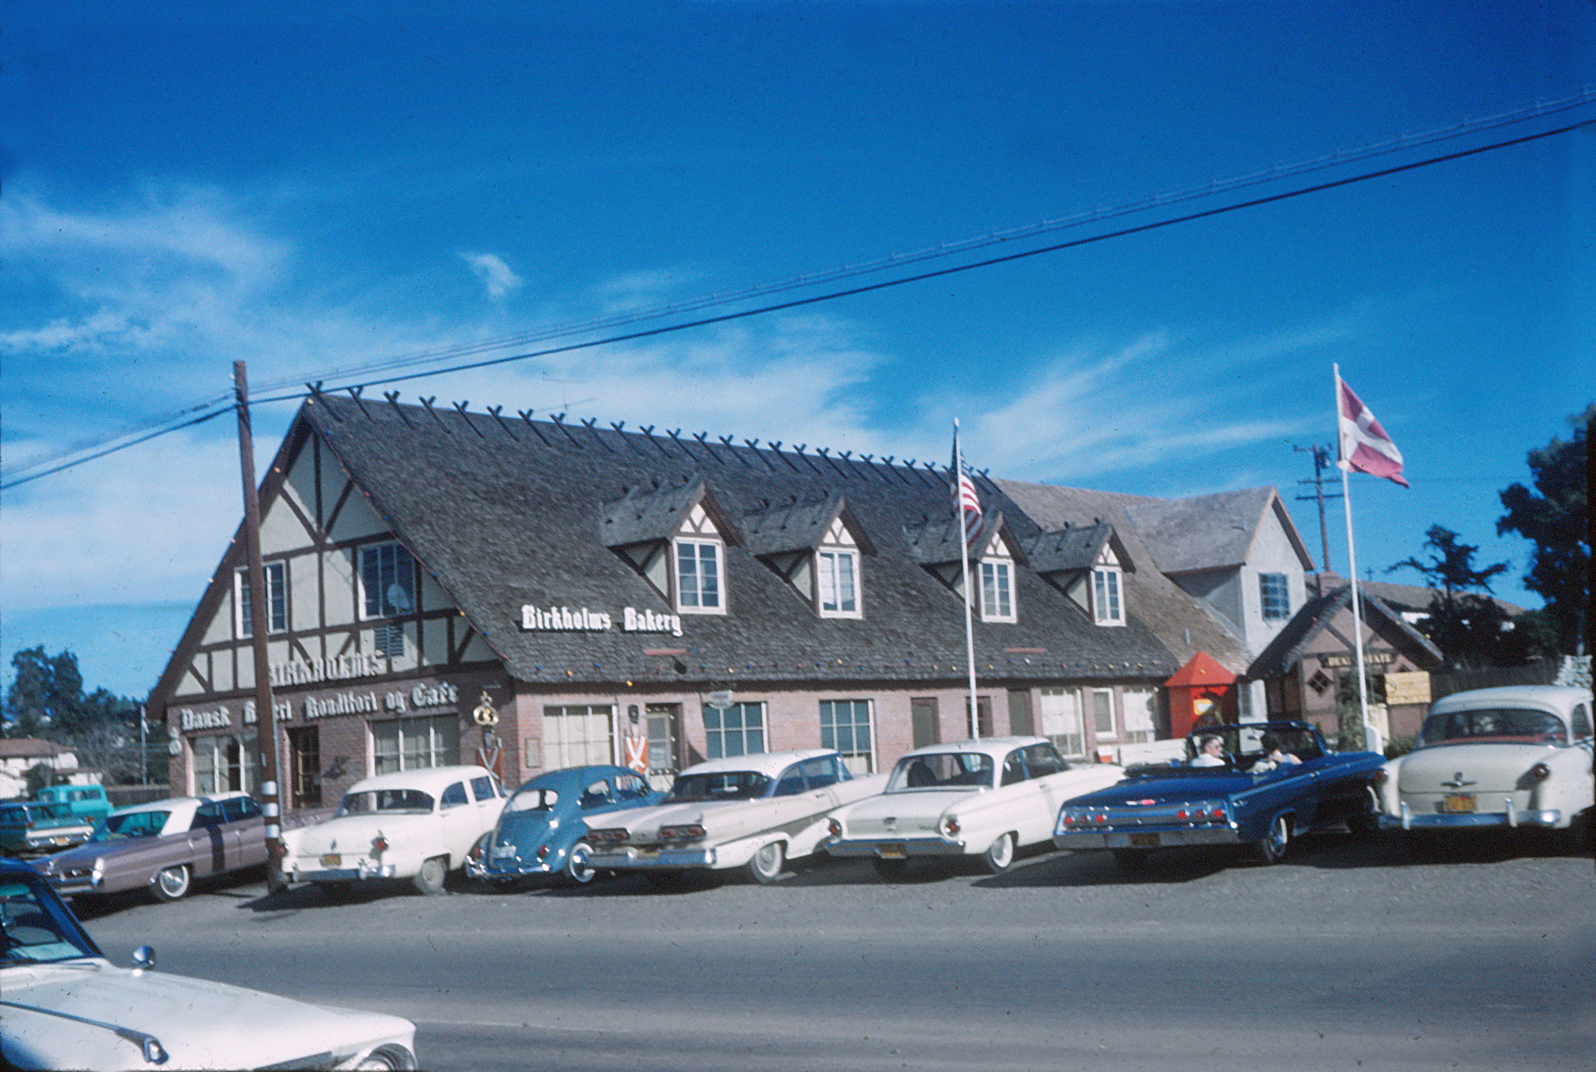 Birkholm's Bakery in Solvang, California around 1960.  This family-owned bakery  is still in operation!